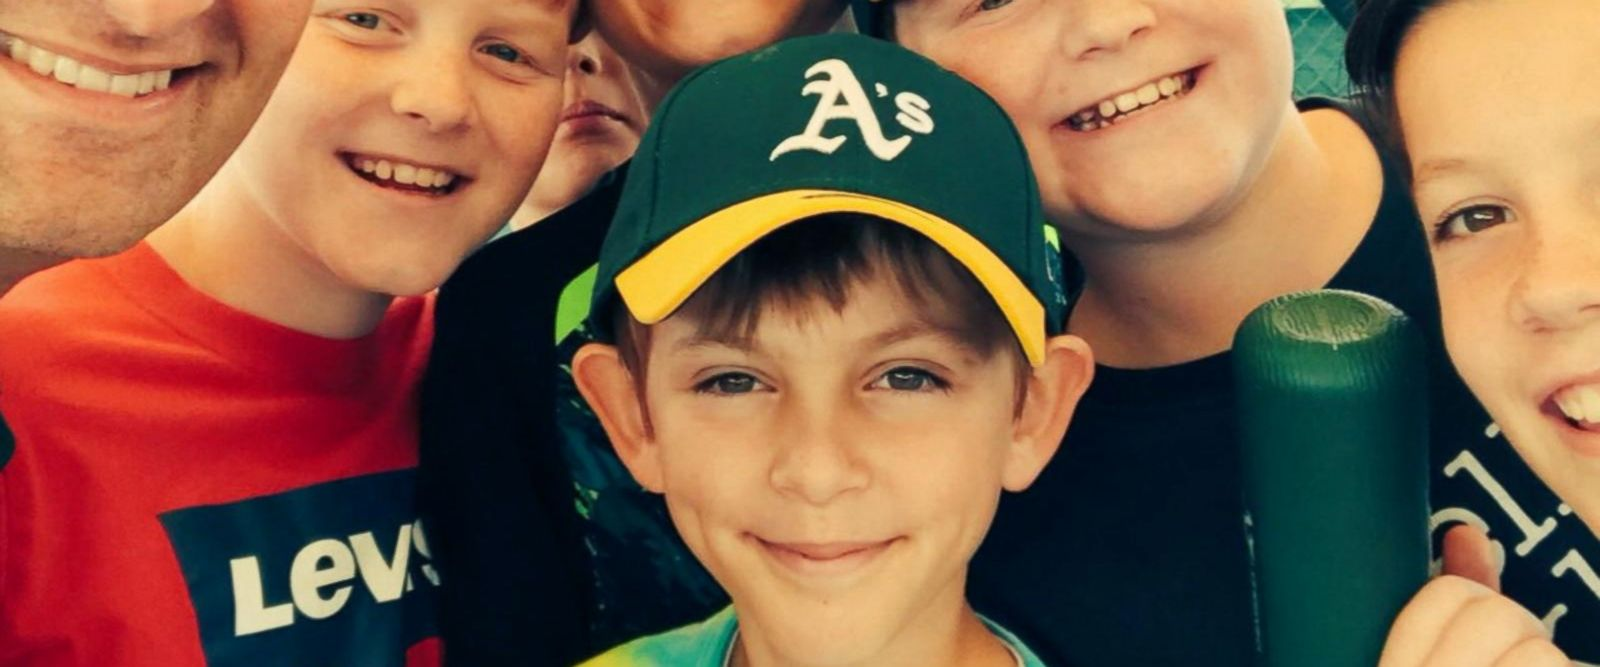 VIDEO: Oakland A's help replace young fan's baseball collection